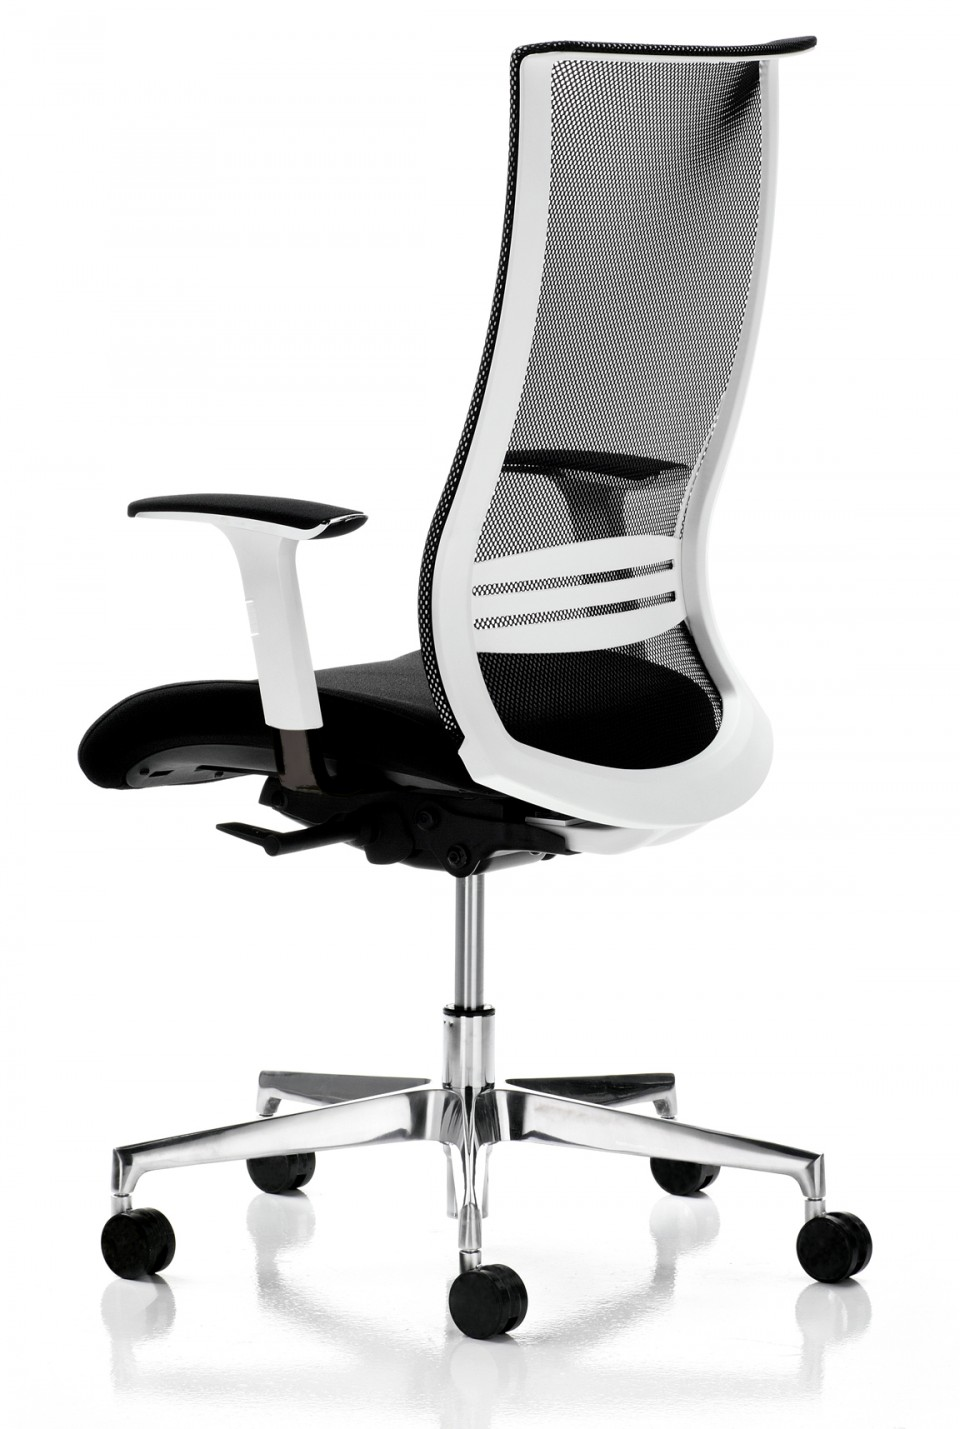 fauteuil bureau ergonomique wave blanc achat si ges de bureau 475 00. Black Bedroom Furniture Sets. Home Design Ideas